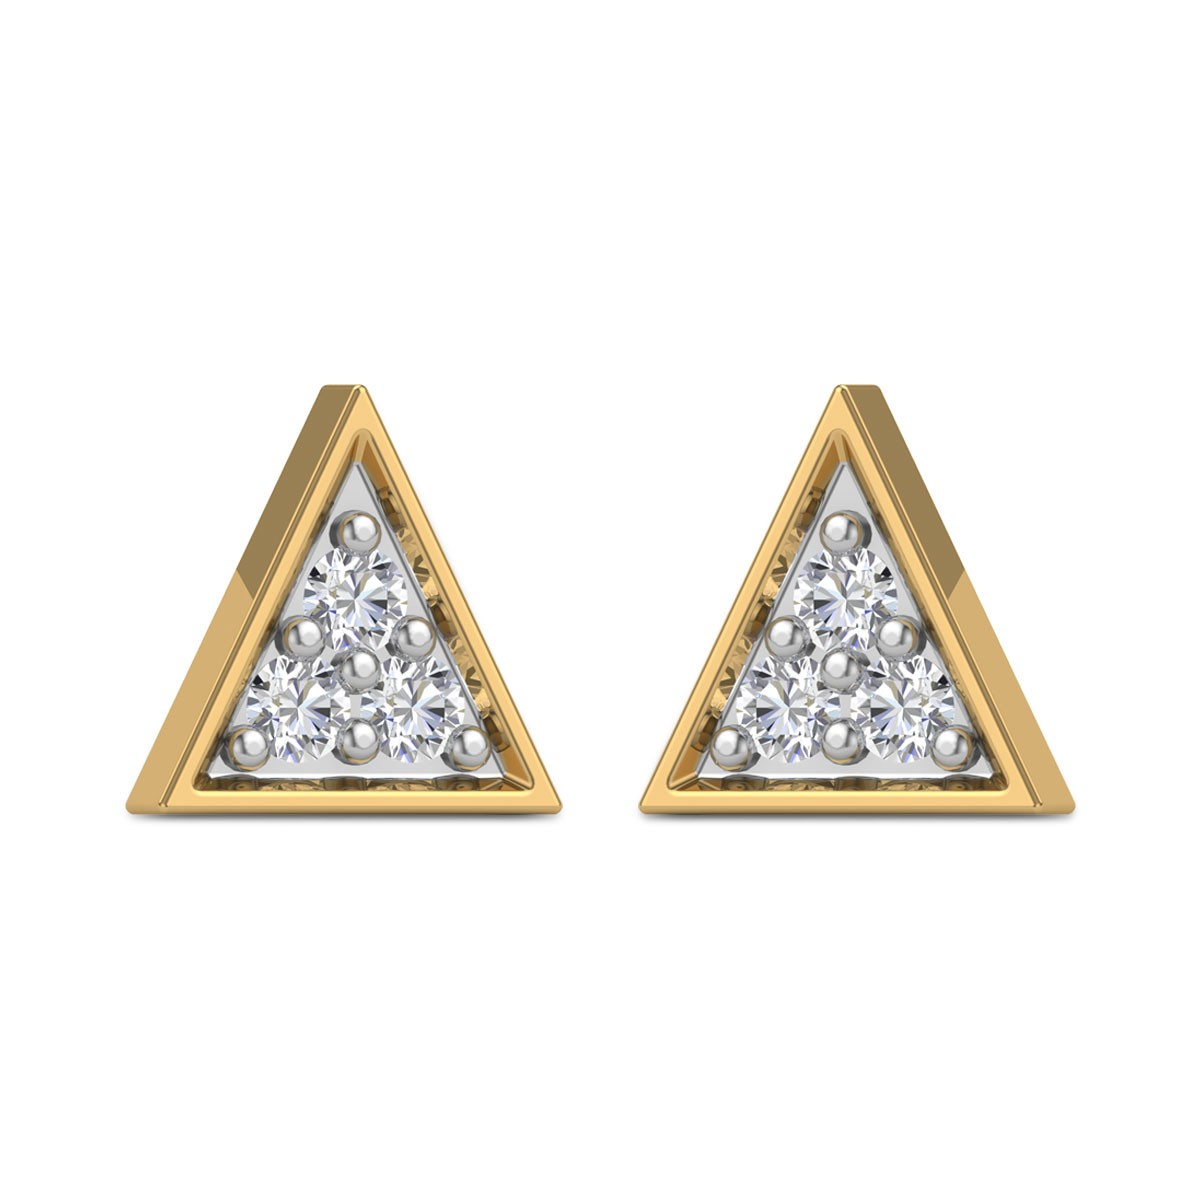 Adilah triangle Diamond Earrings